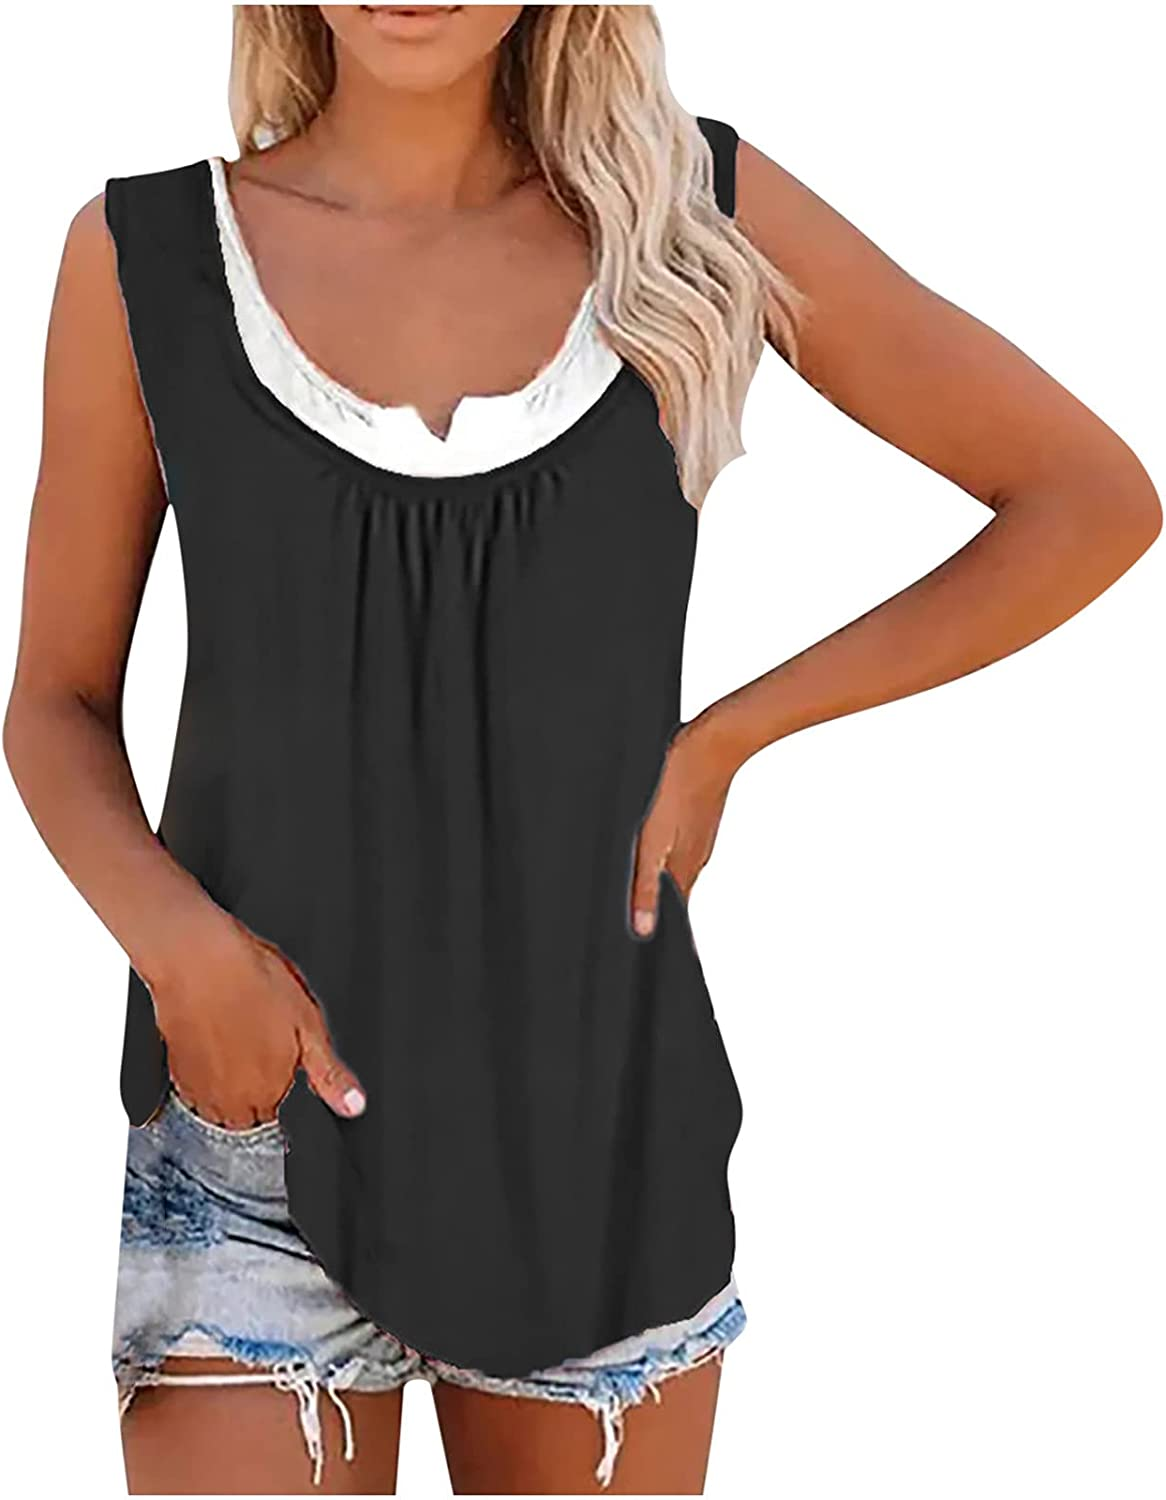 Women's Collision Fake Two Tops Summer Casual Loose Sleeveless Tank Top Splicing Classic Vest Tops Blouse